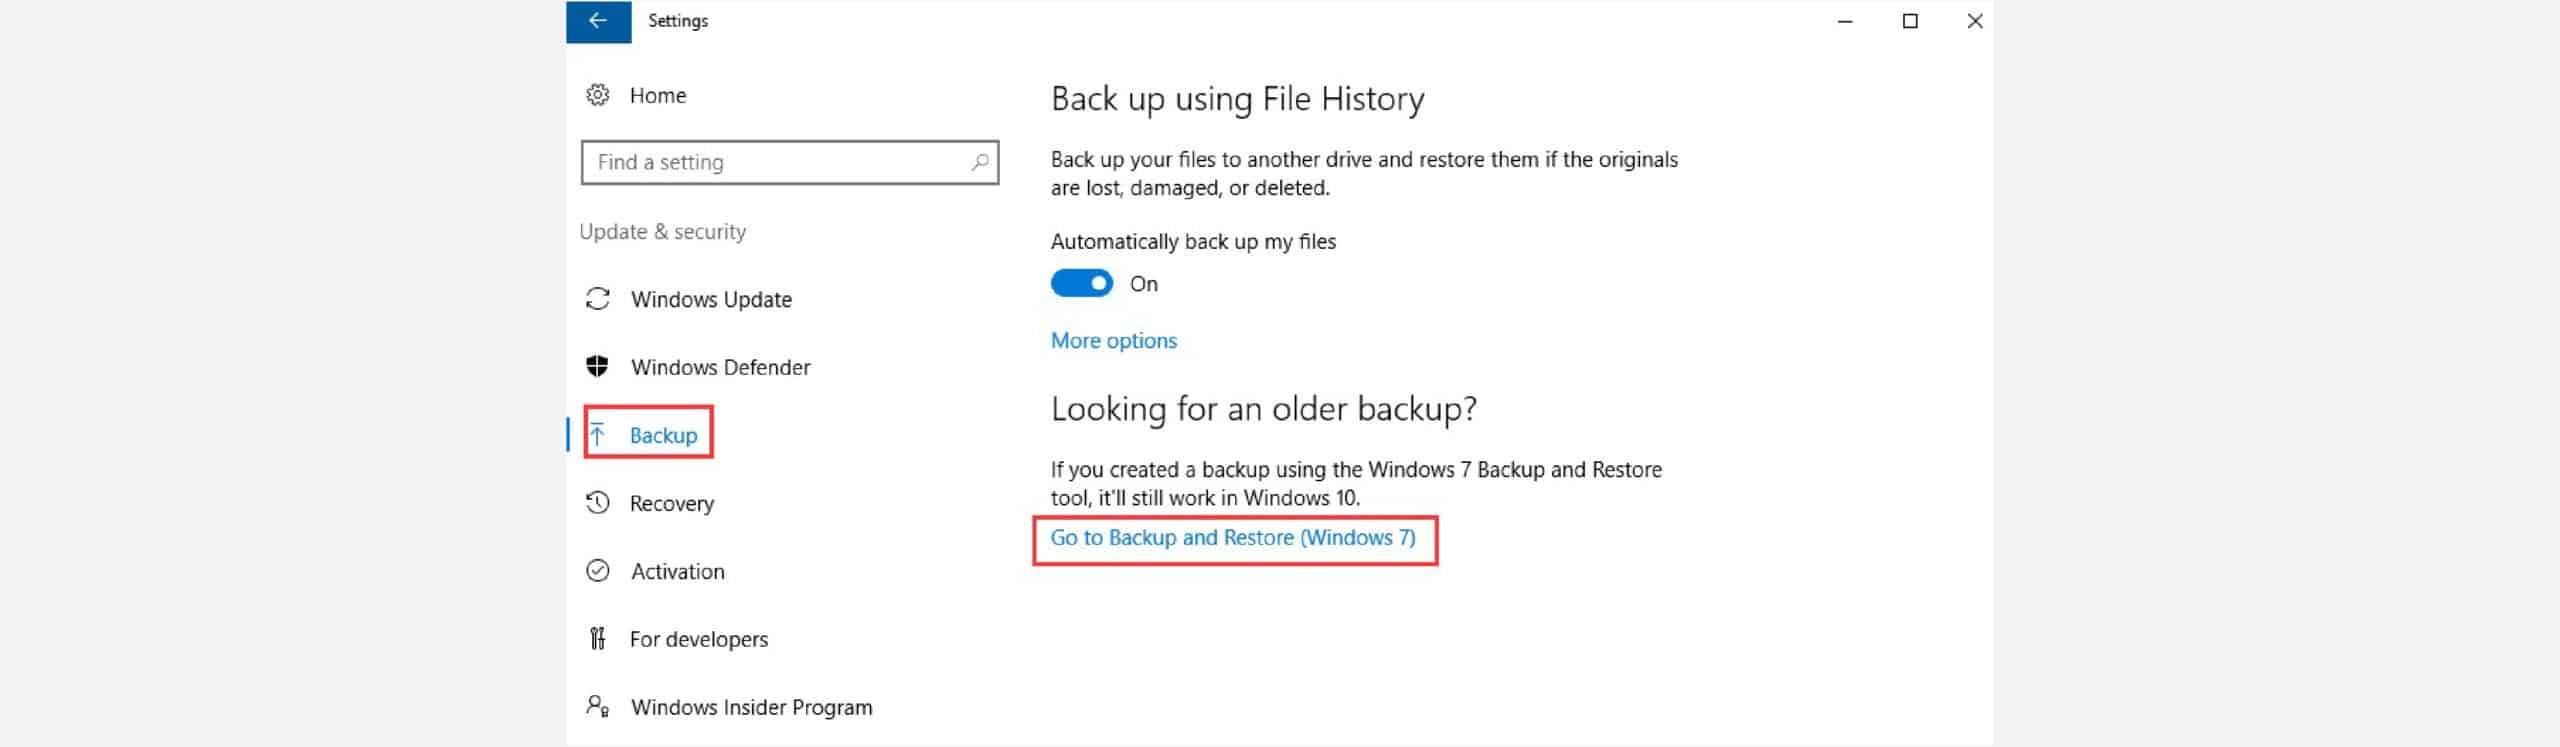 Recover Deleted Files | 5 Minute HelpDesk - Recover Lost or Deleted Files